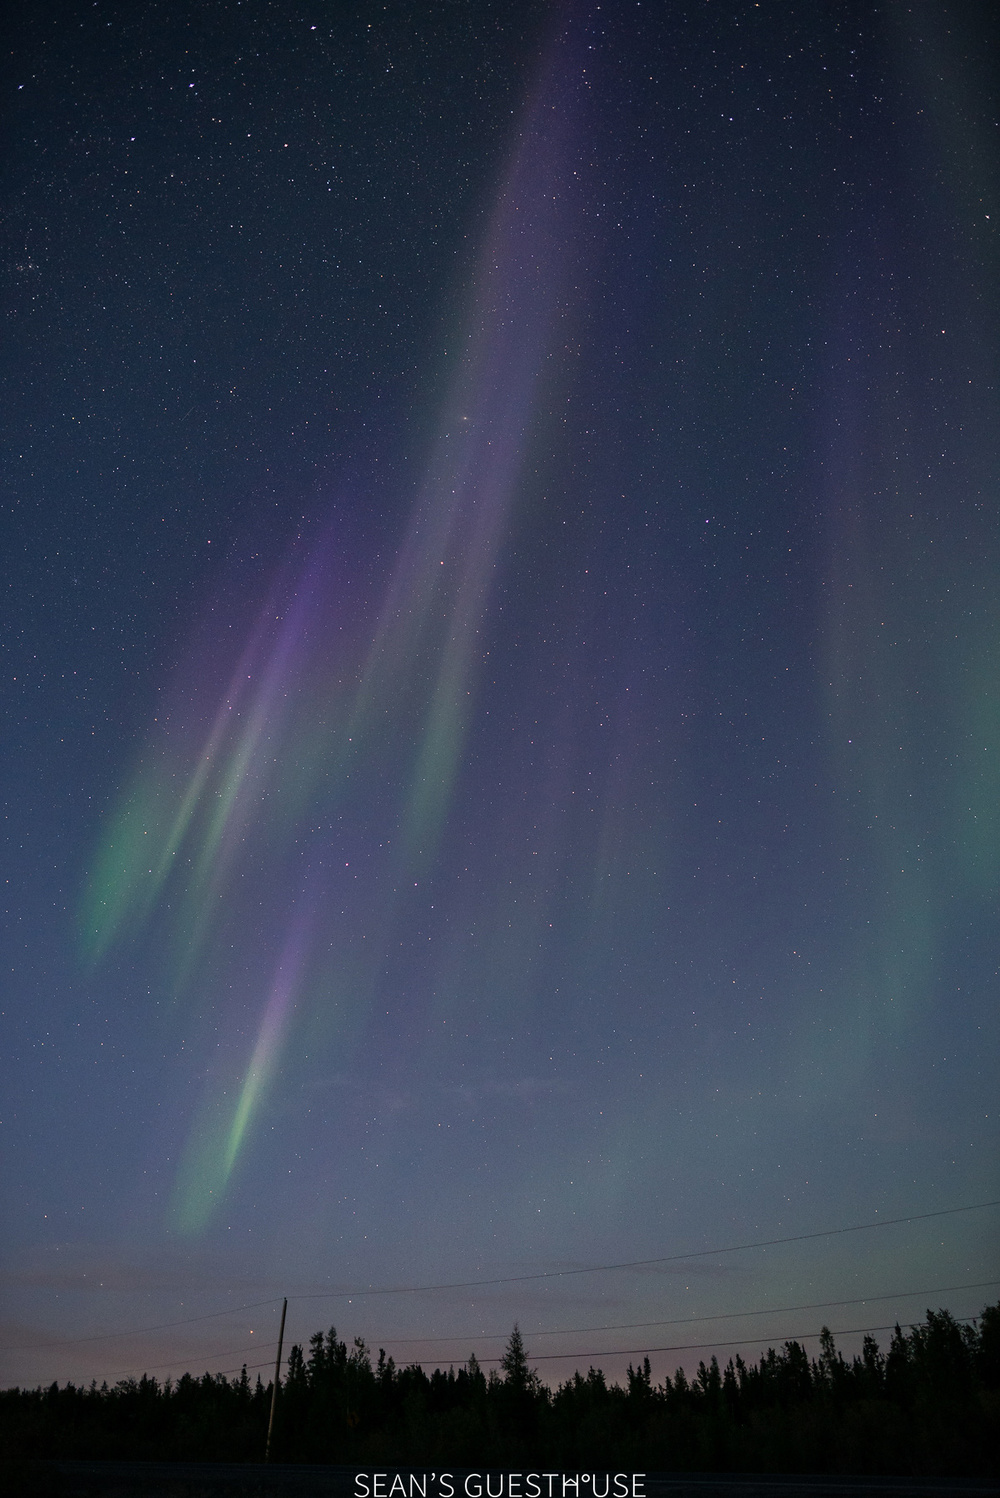 Sean's Guesthouse - Yellowknife Northern Lights and Perseid Meteor Shower - 3.jpg